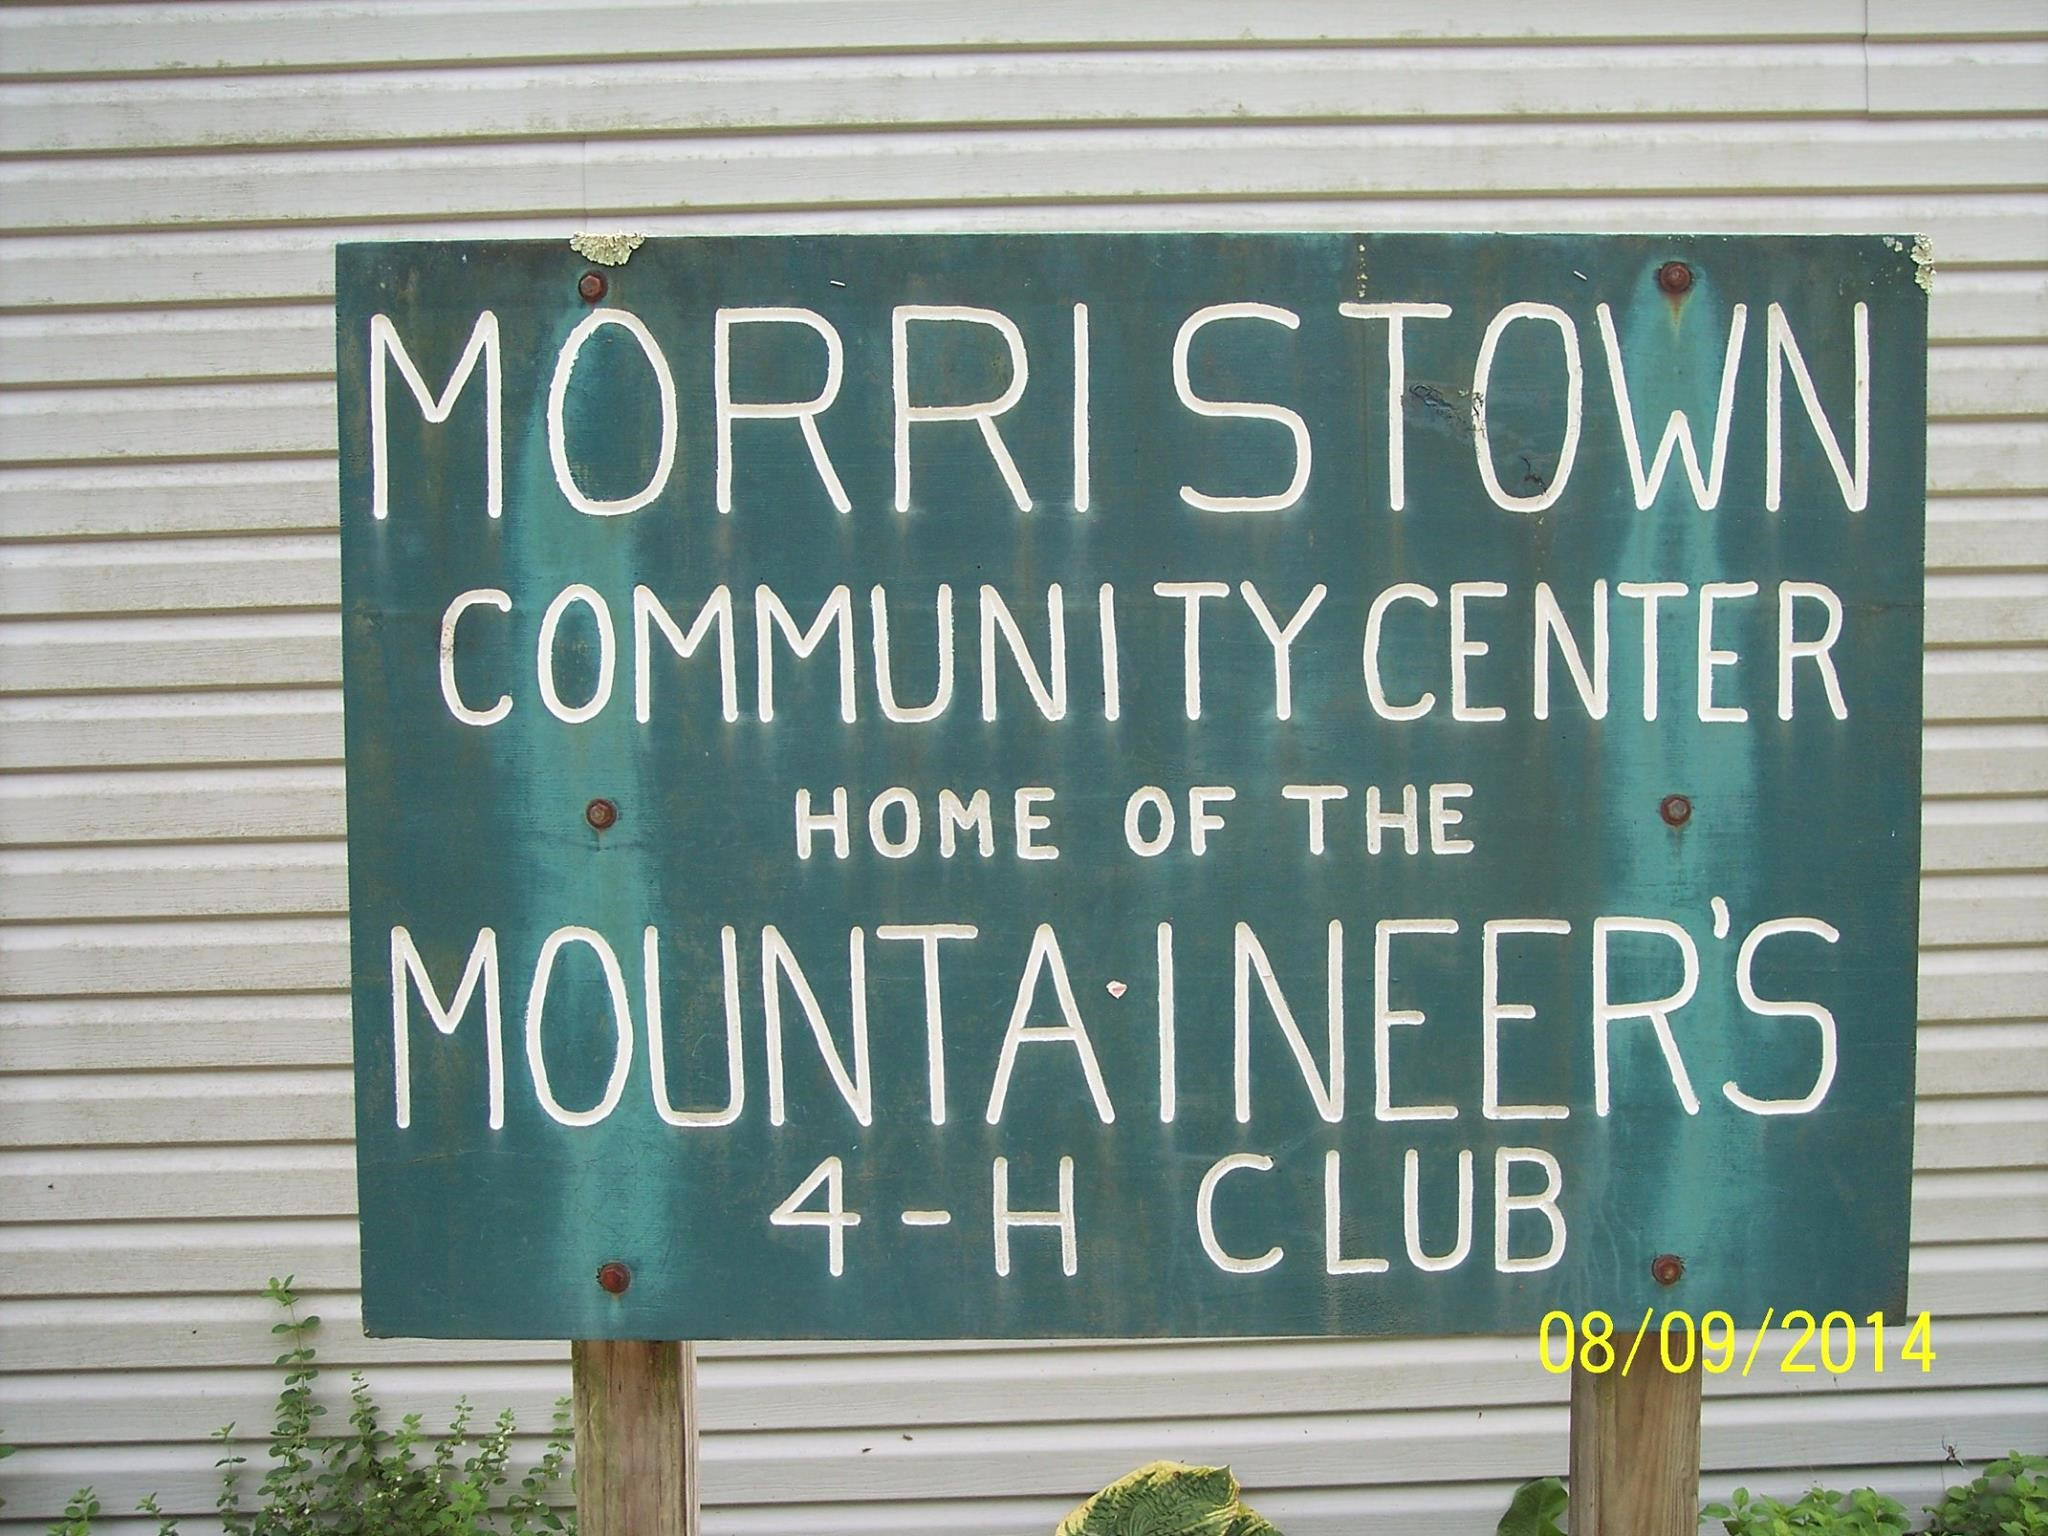 Morristown in recent years